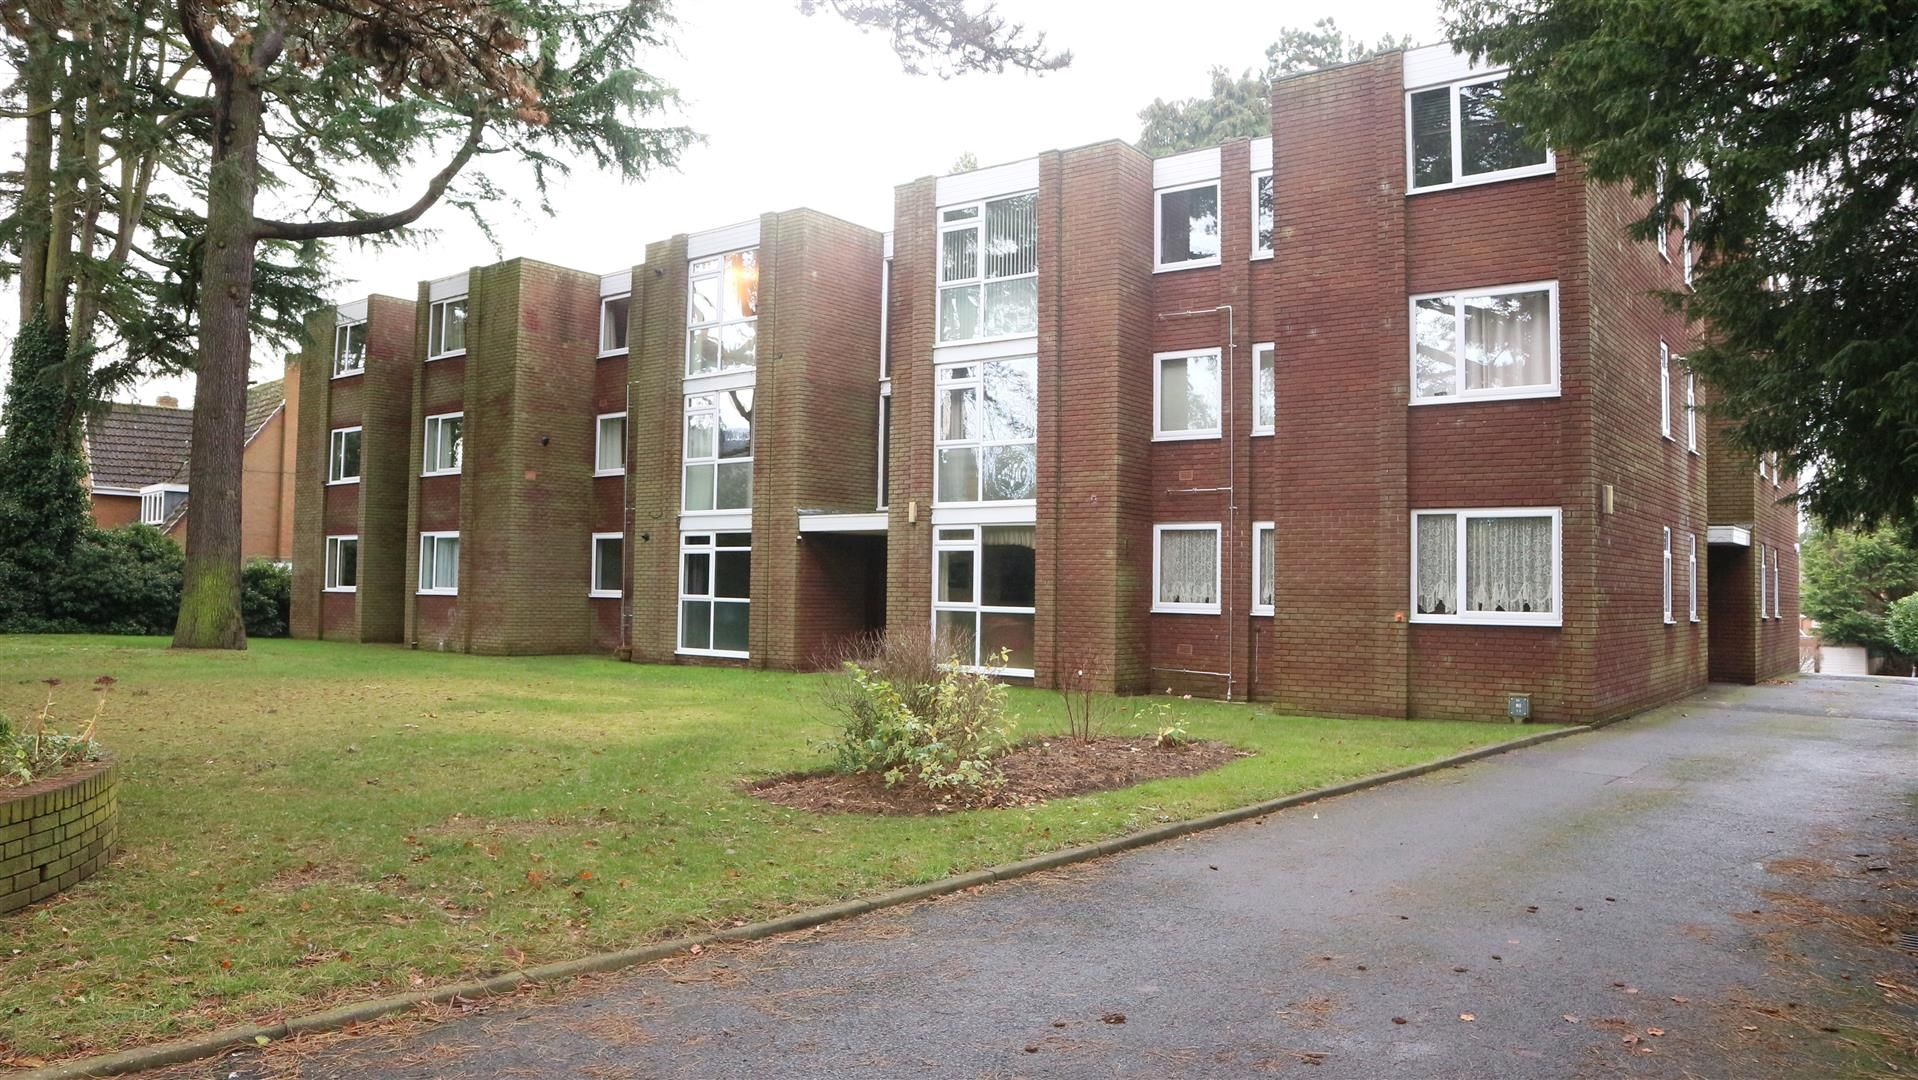 2 bed apartment for sale, DY9